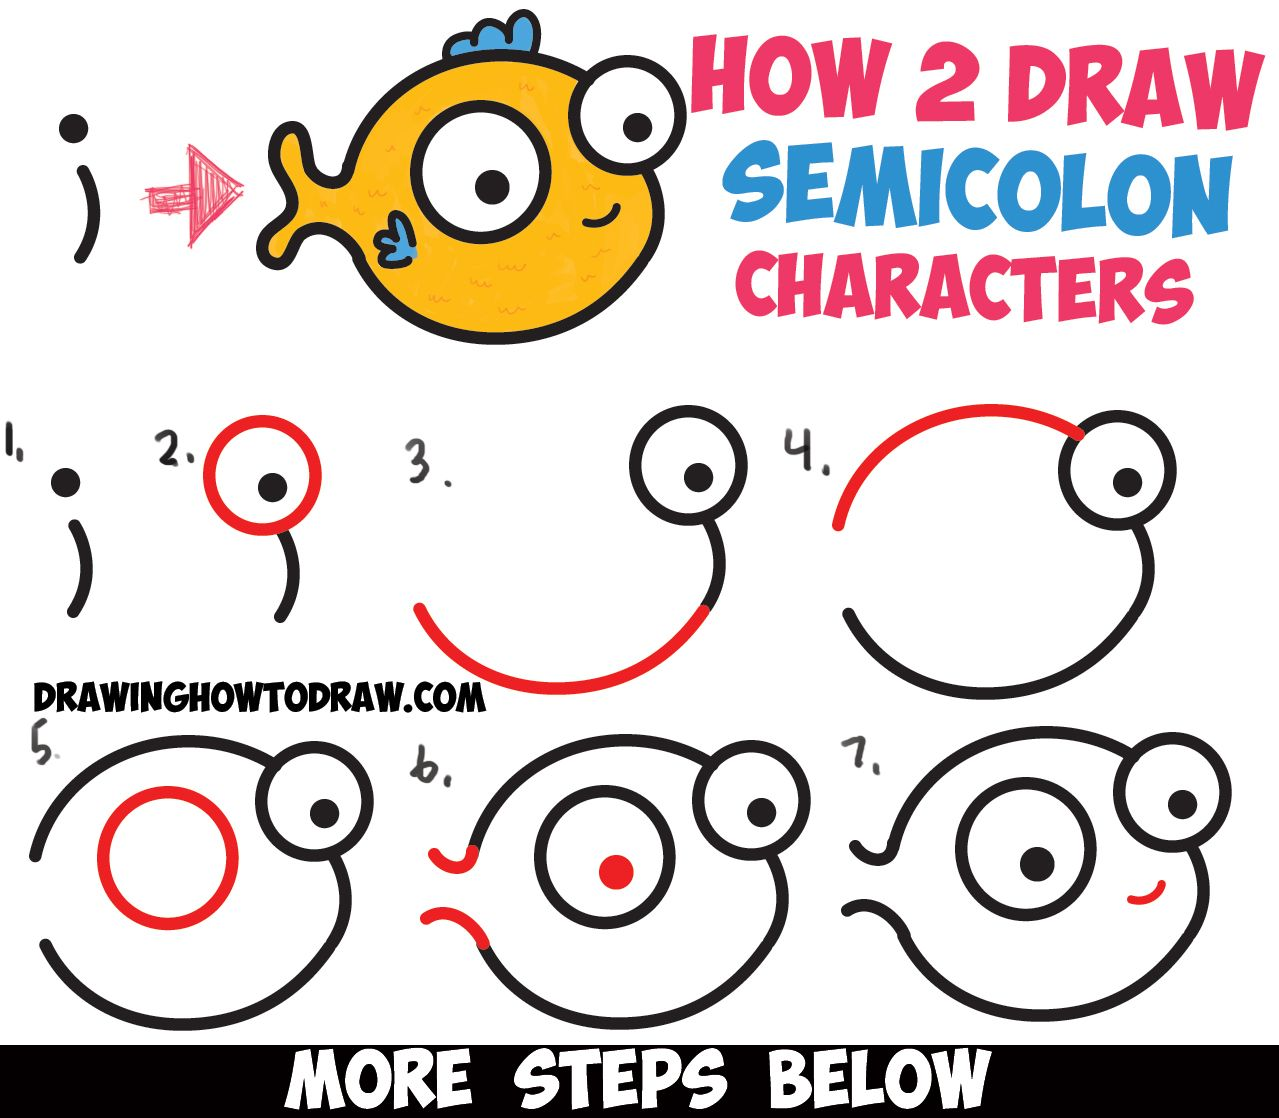 How To Draw Cute Cartoon Characters From Semicolons Easy Step By Step Drawing Tutorial For Kids How To Draw Step By Step Drawing Tutorials Drawn Fish Easy Fish Drawing Simple Cartoon